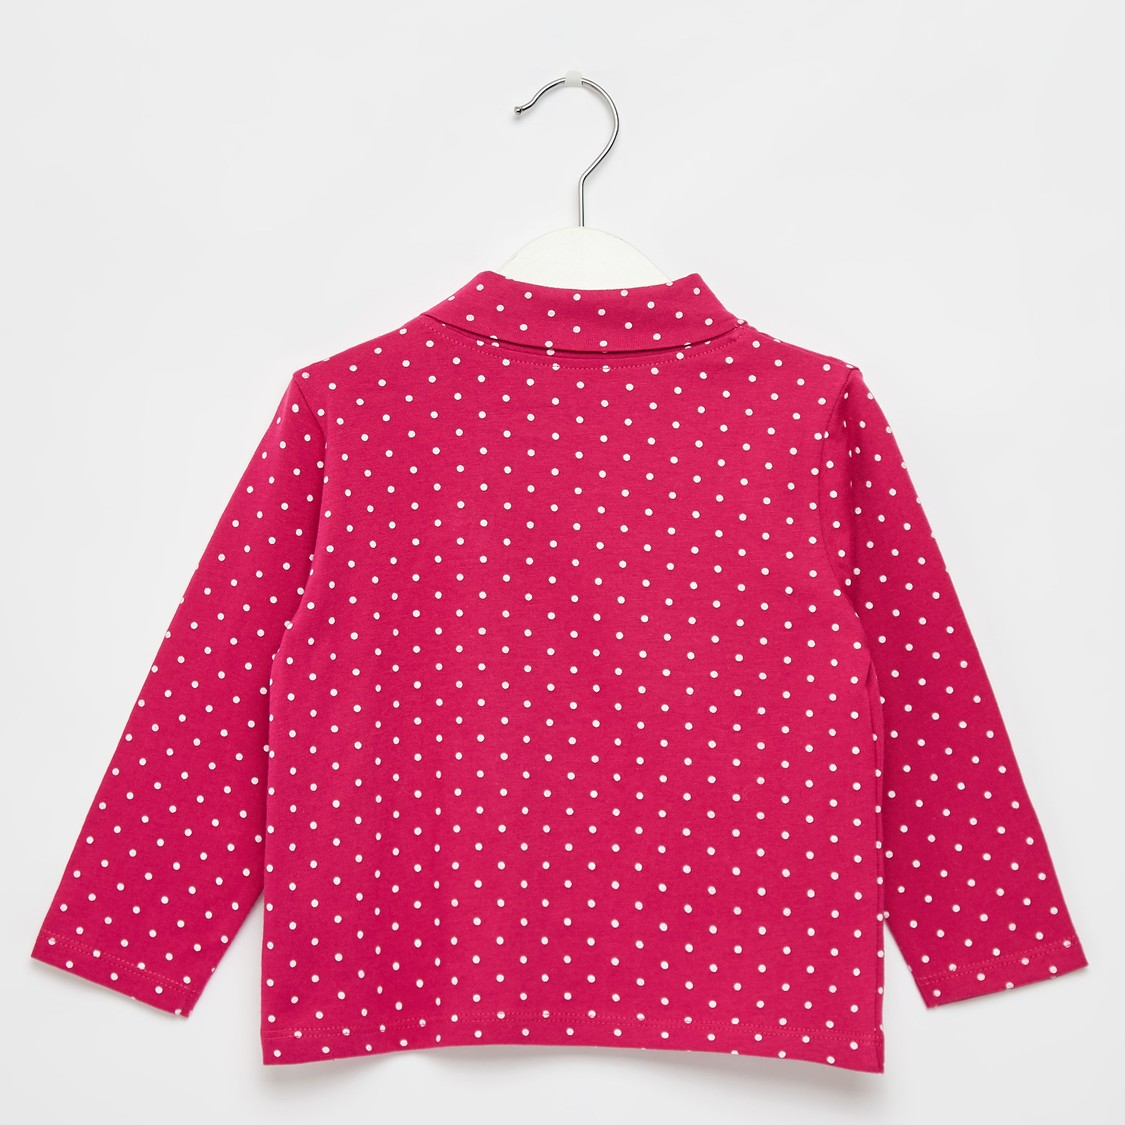 Dots Print High Neck T-shirt with Long Sleeves